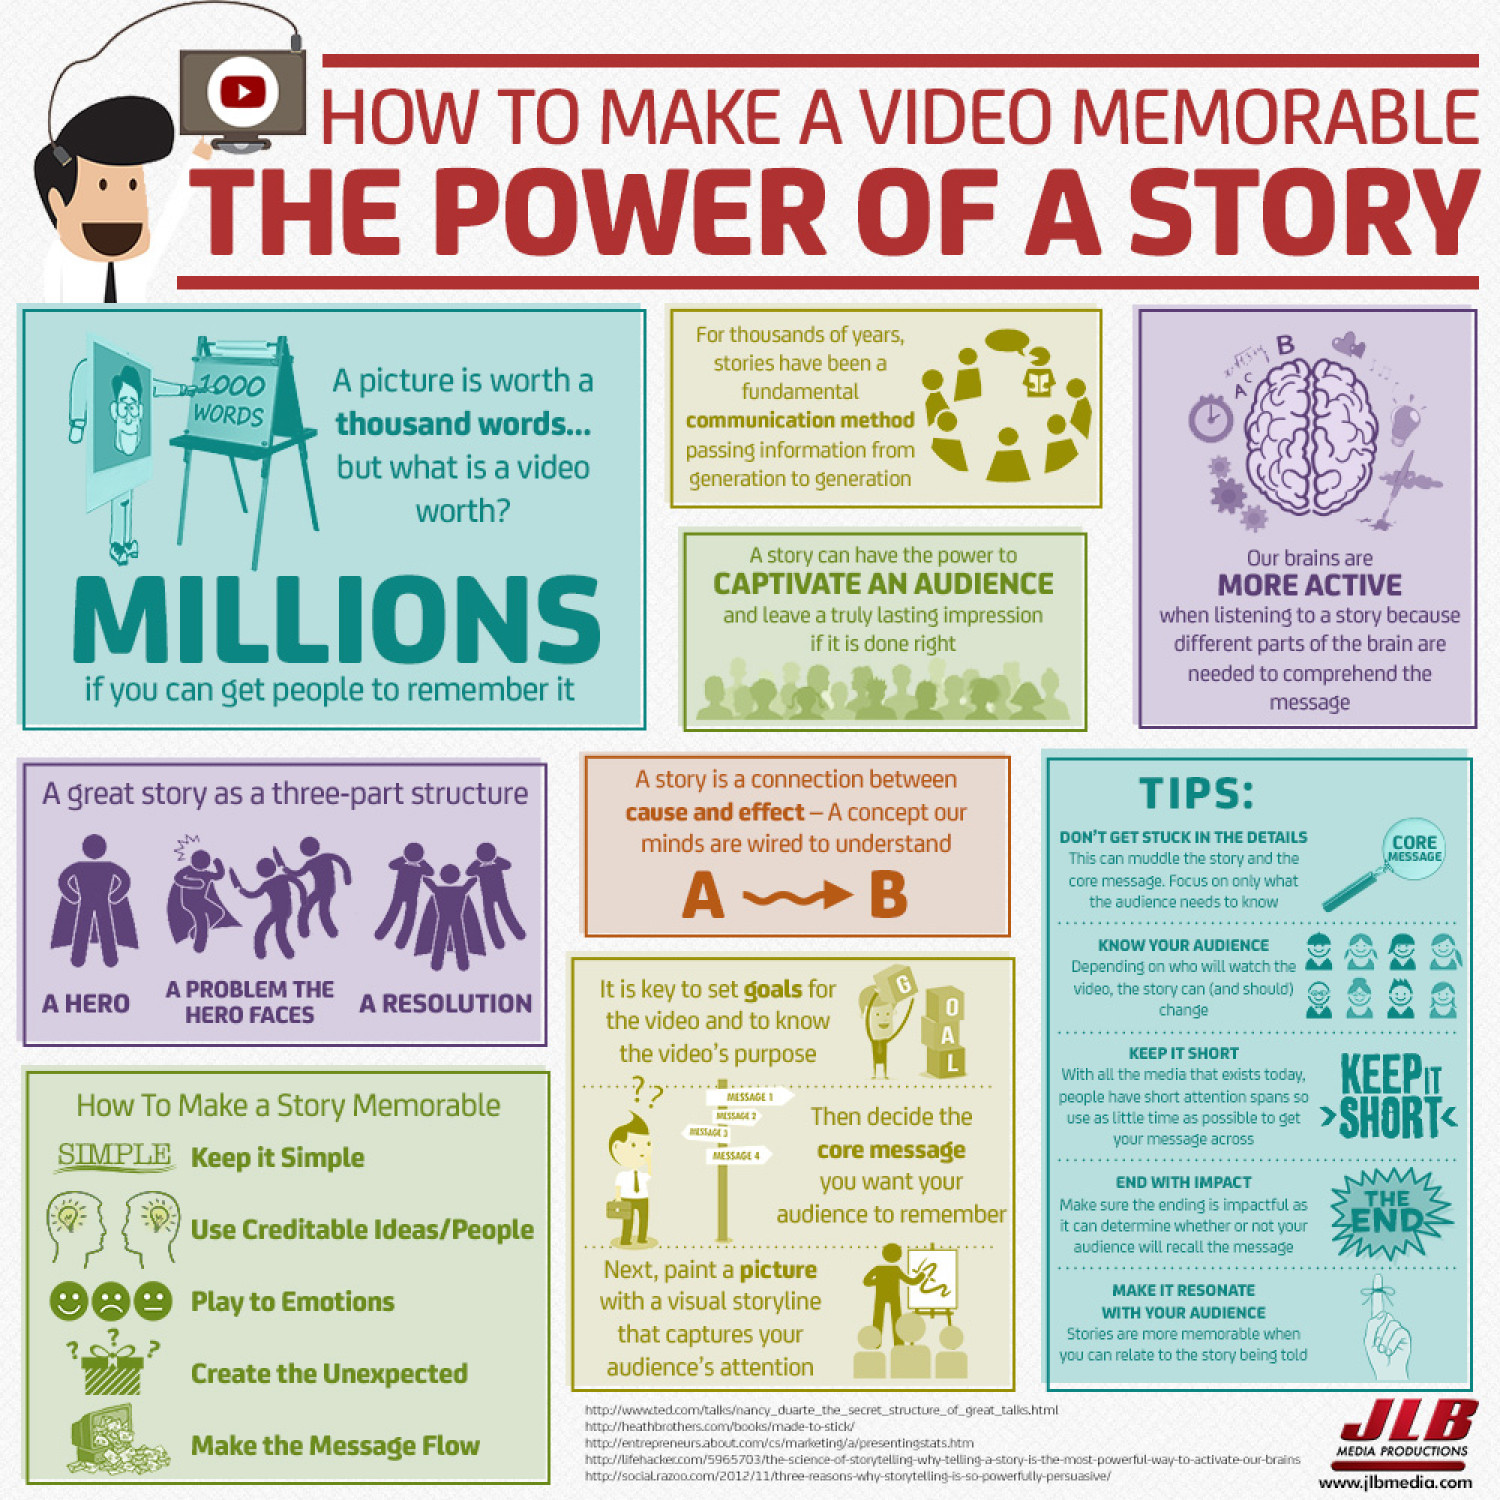 How To Make A Video Memorable: The Power of a Story Infographic